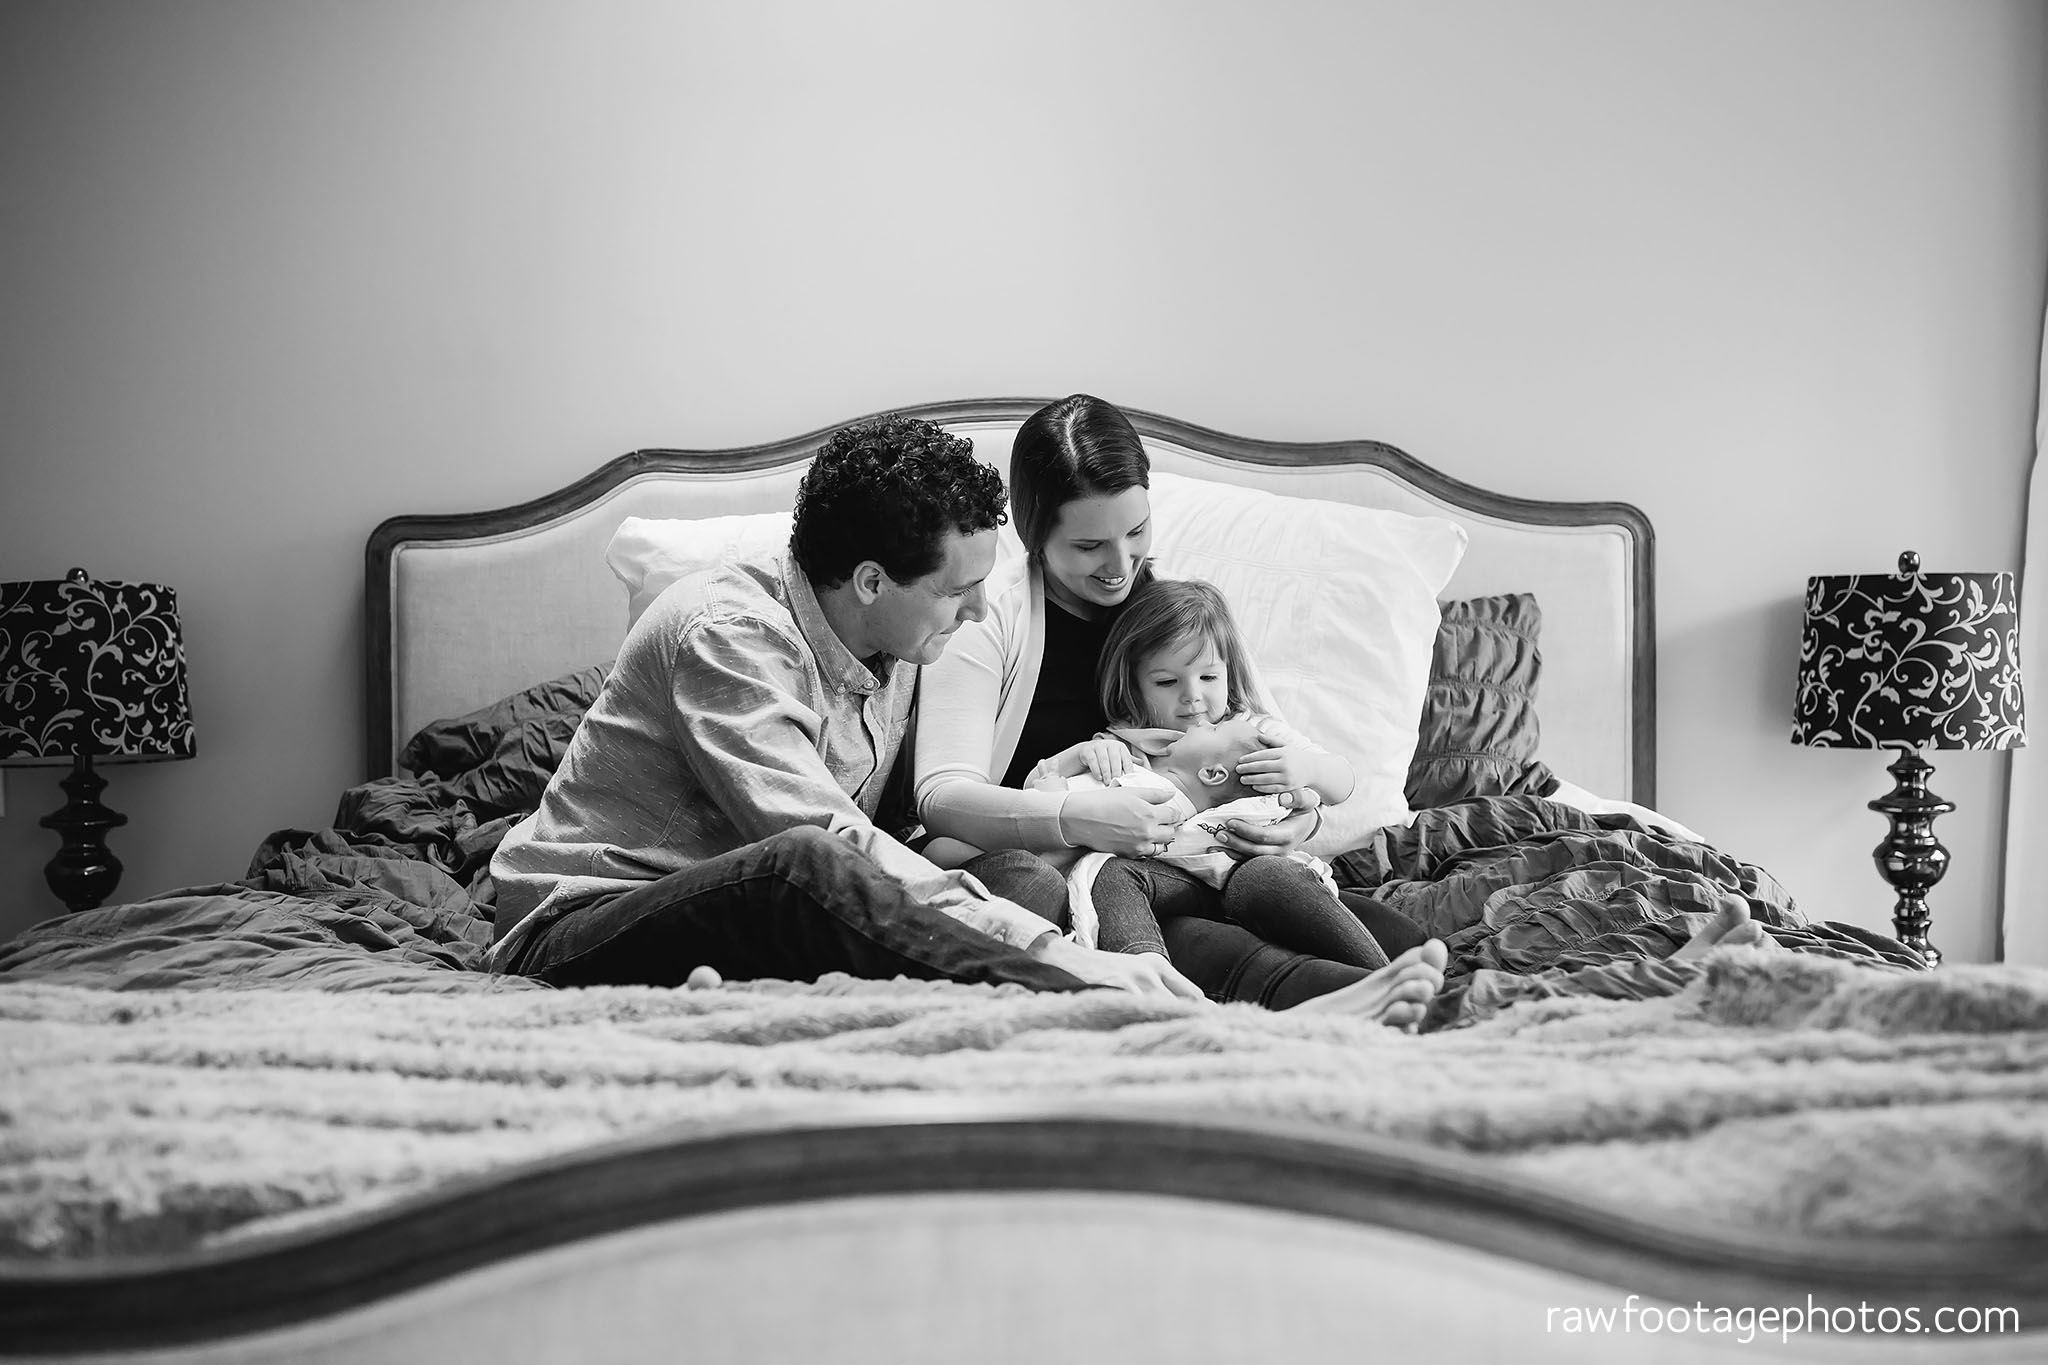 london_ontario_newborn_photographer-lifestyle_newborn_photography-in_home_newborn_session-raw_footage_photography002.jpg